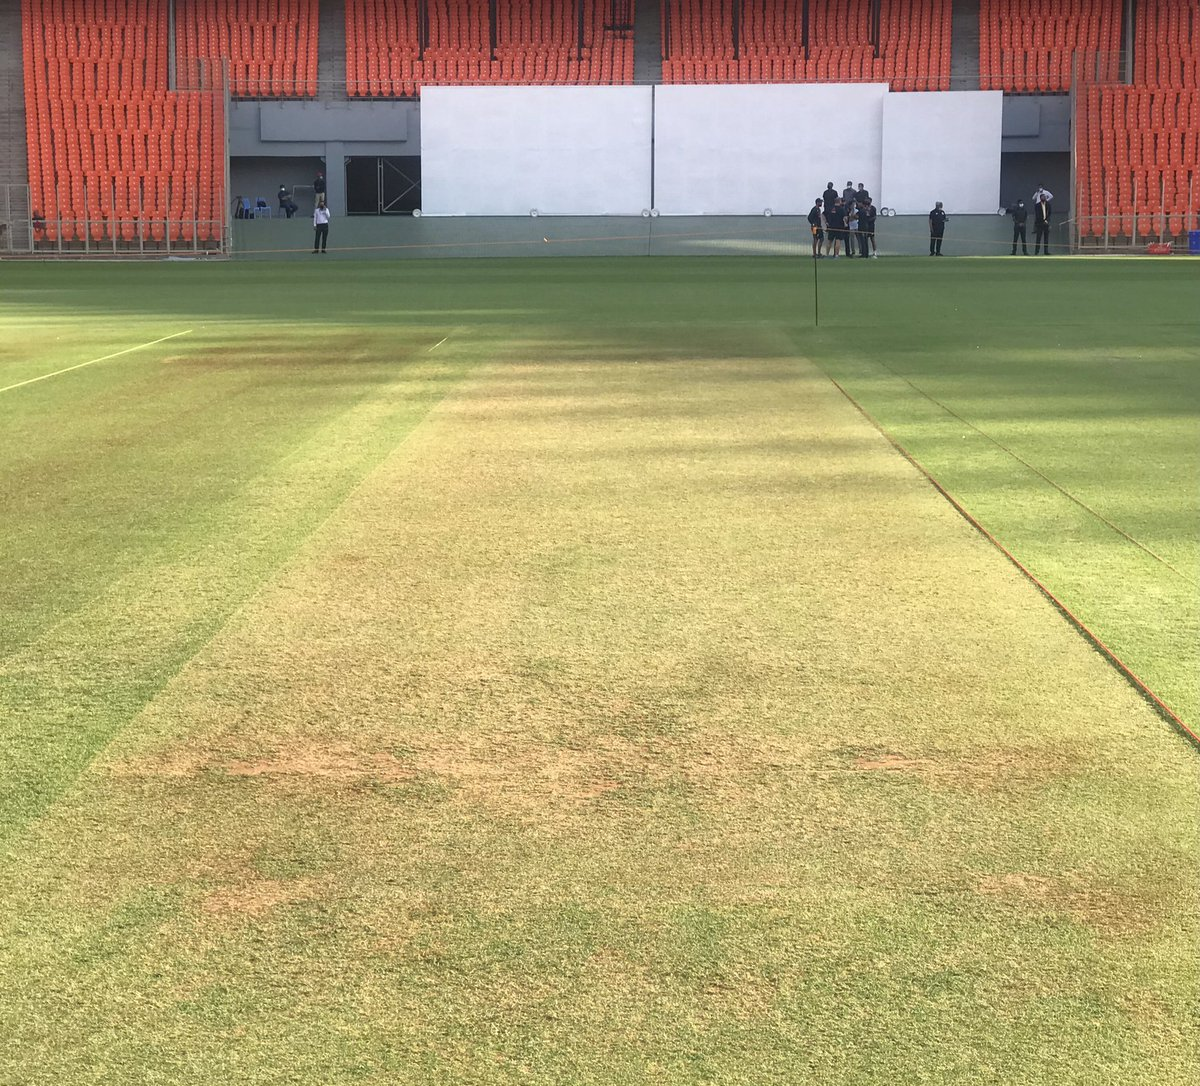 "CricketMAN2 on Twitter: ""This is Motera Stadium today's Pitch for the 3rd  or Pink Ball Test match between India and England. #INDvENG… """